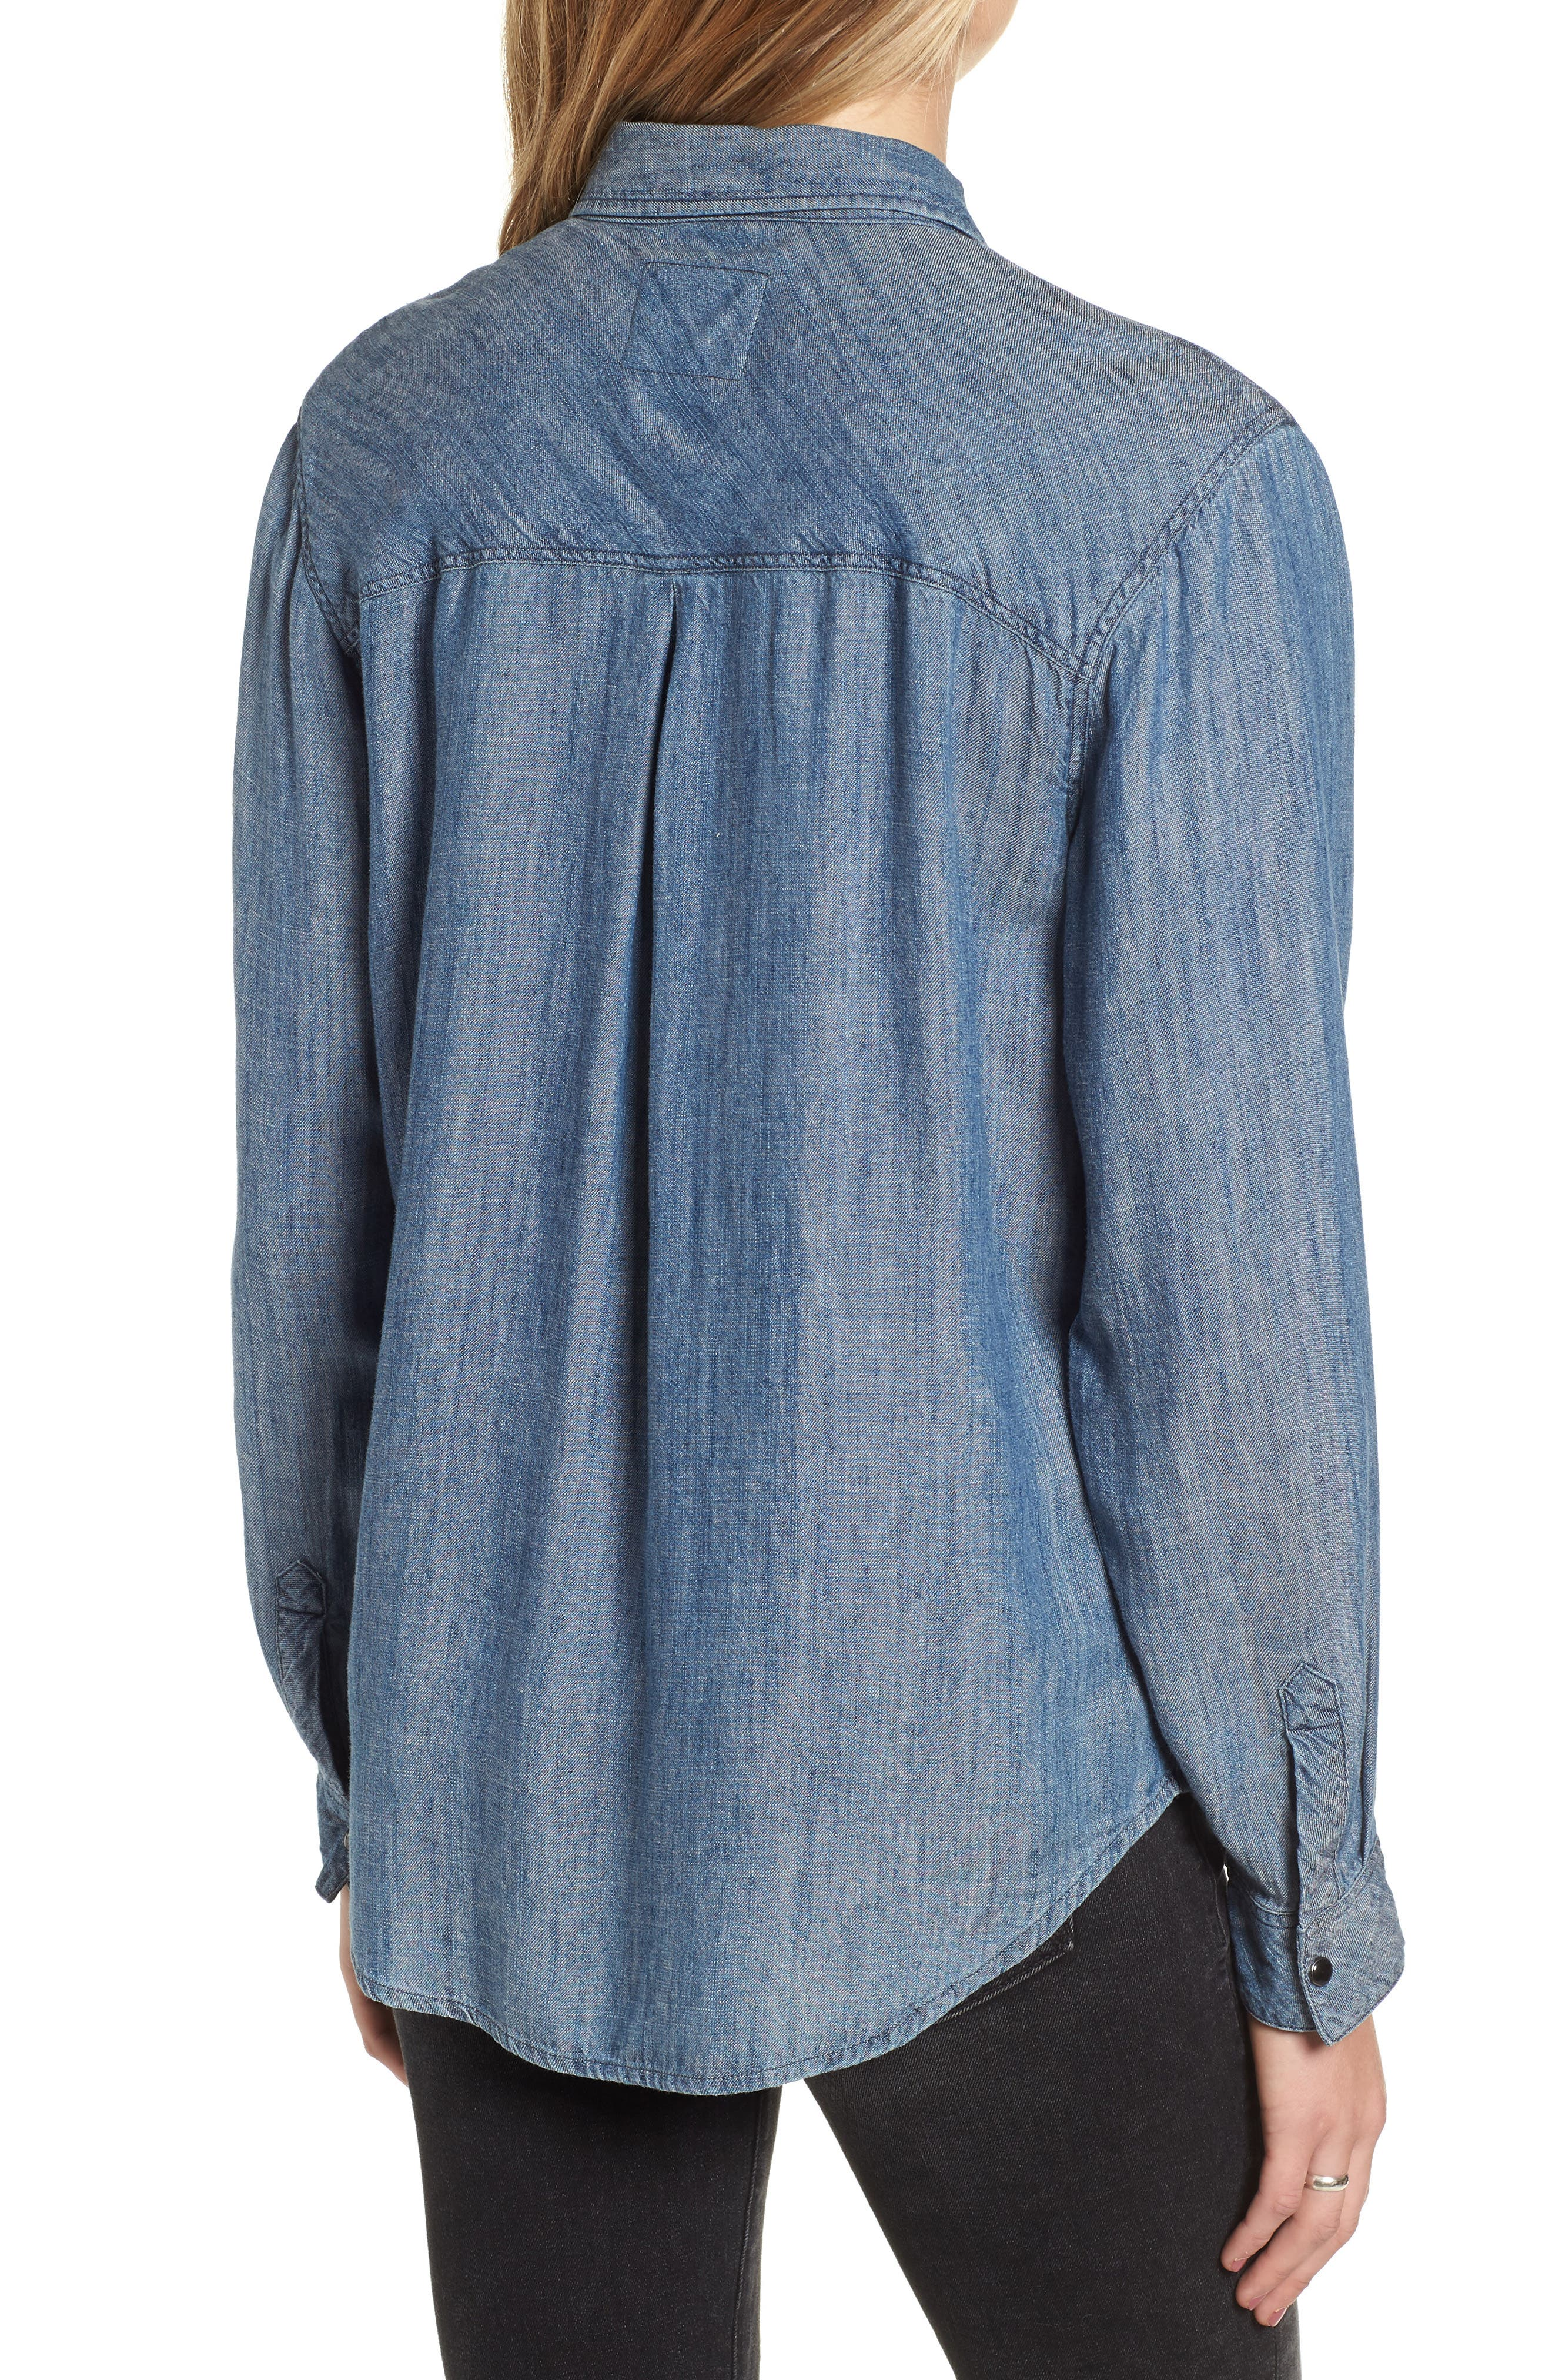 Cass Chambray Top,                             Alternate thumbnail 2, color,                             DARK VINTAGE WASH